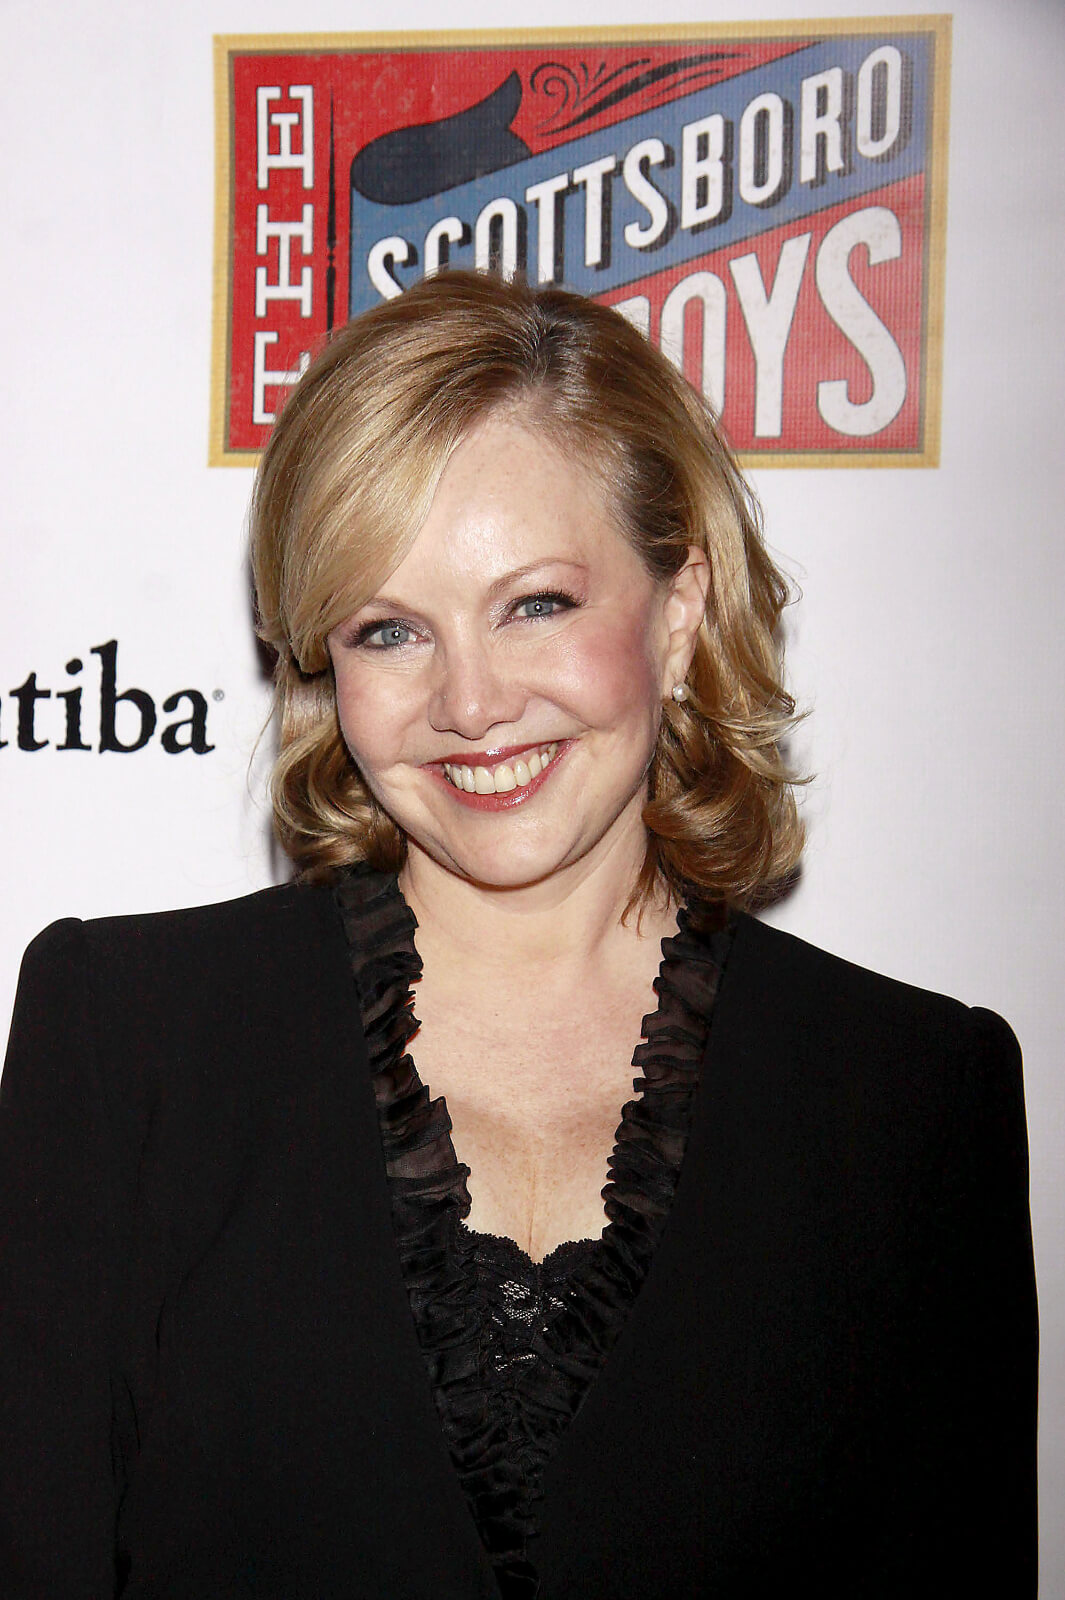 Susan Stroman, dressed in a black suit, at The Scottsboro Boys Opening Night, logo of show is shown on the step-and-repeat wall behind her.